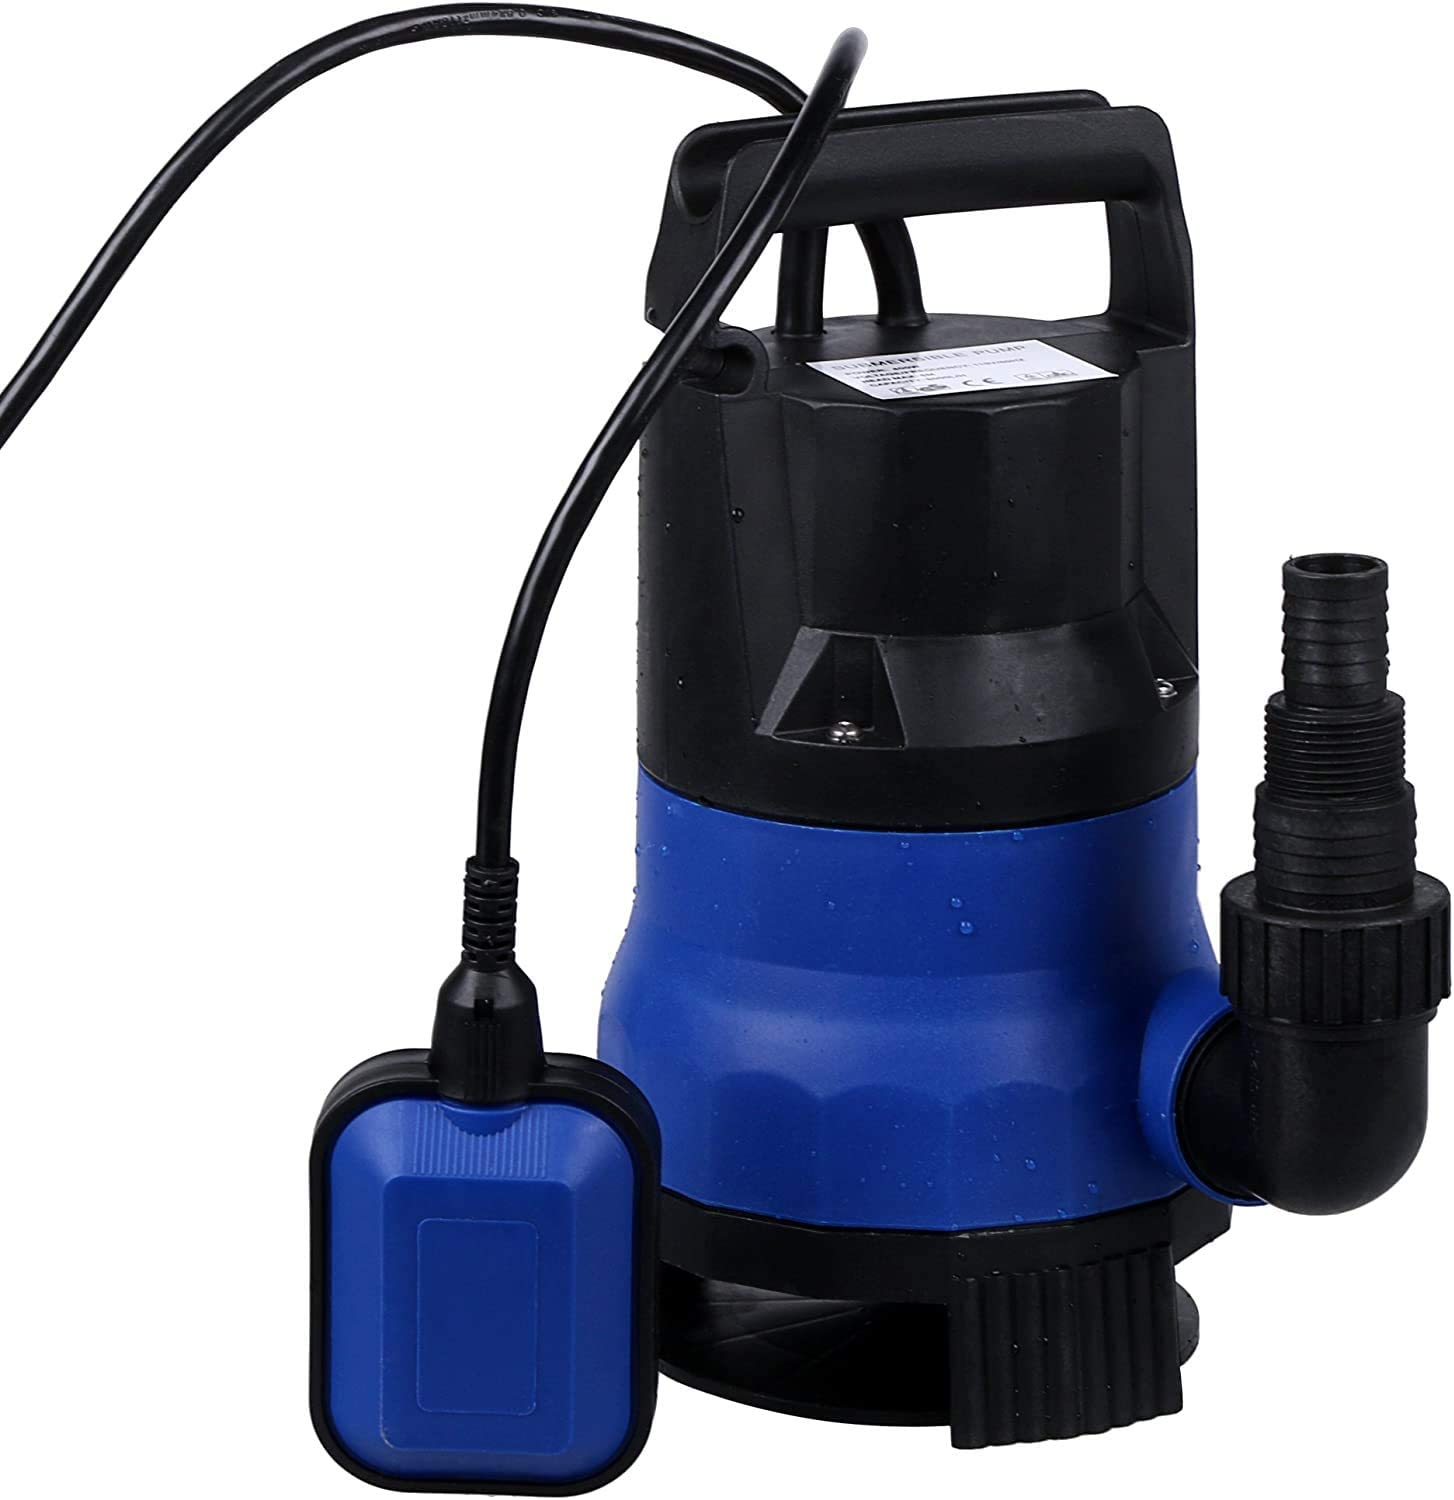 Submersible Water Pump Sump,Homdox 1/2 HP Water pump Clean/Dirty Water 15ft Cable and Float Switch 400W (Blue)